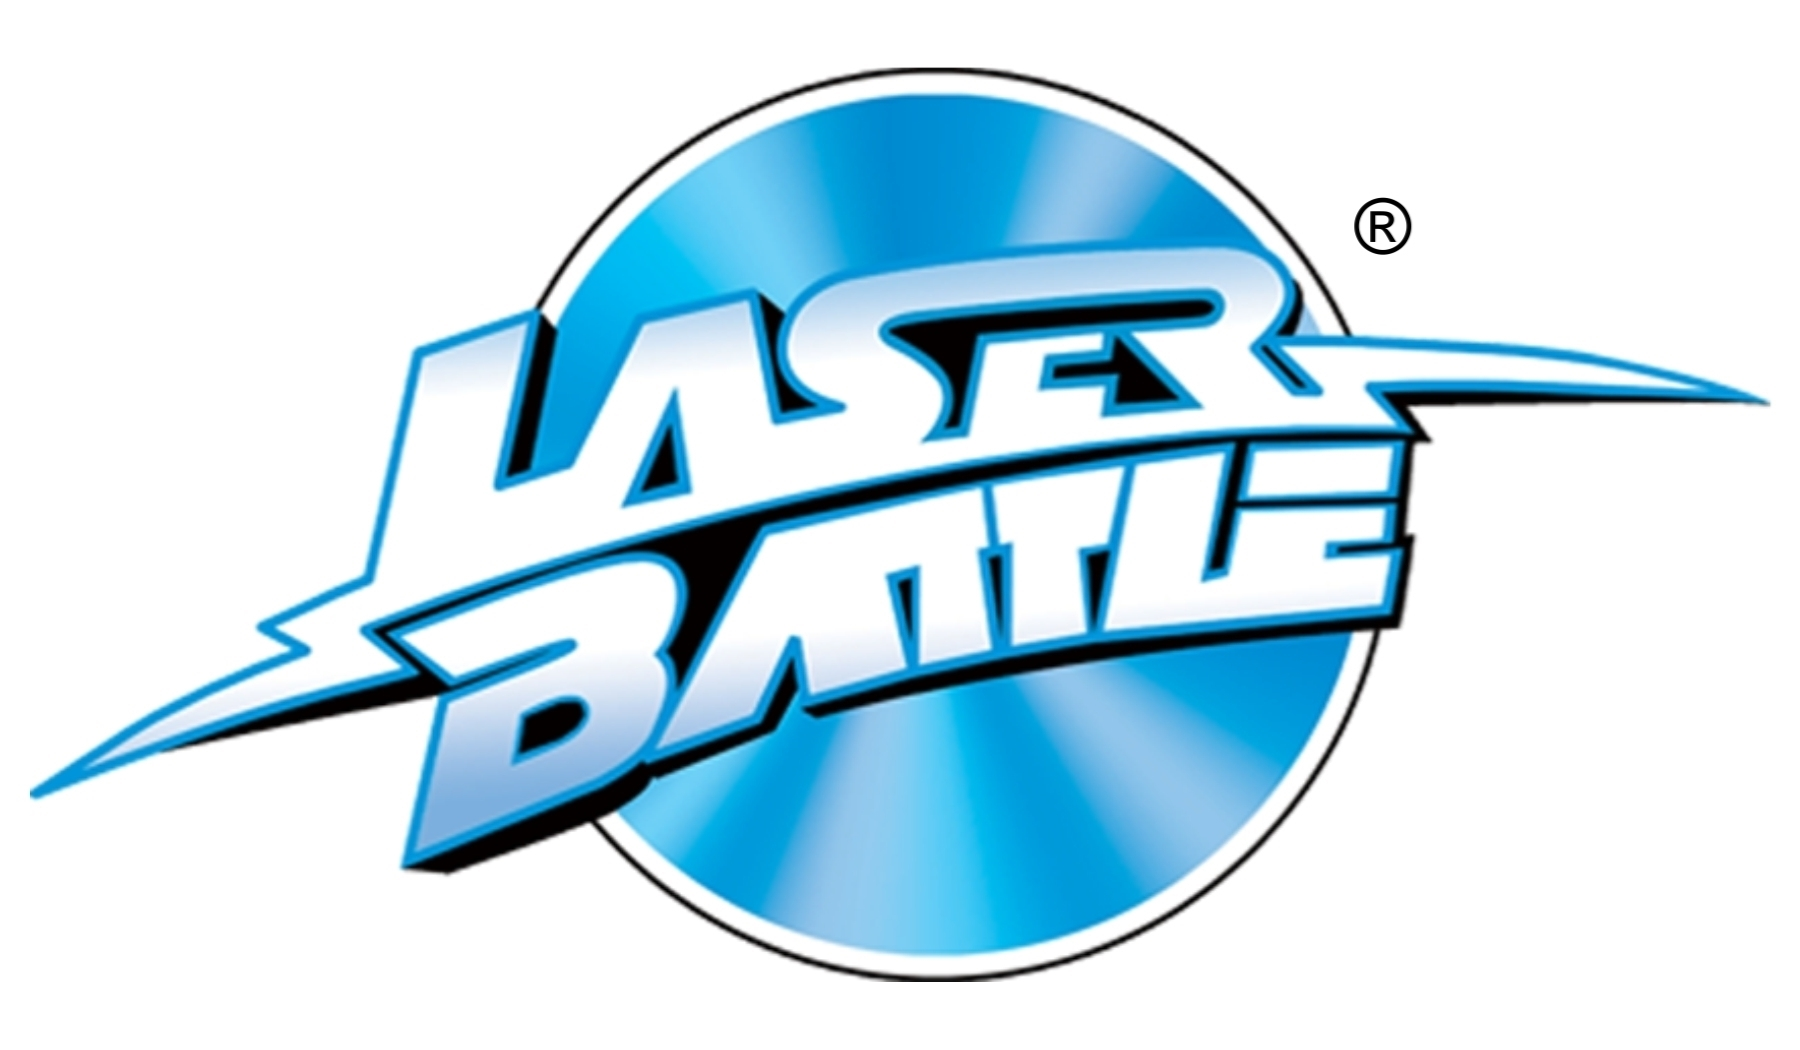 Picture of Laser Battle JB - 2 Games (Monday-Thursday)